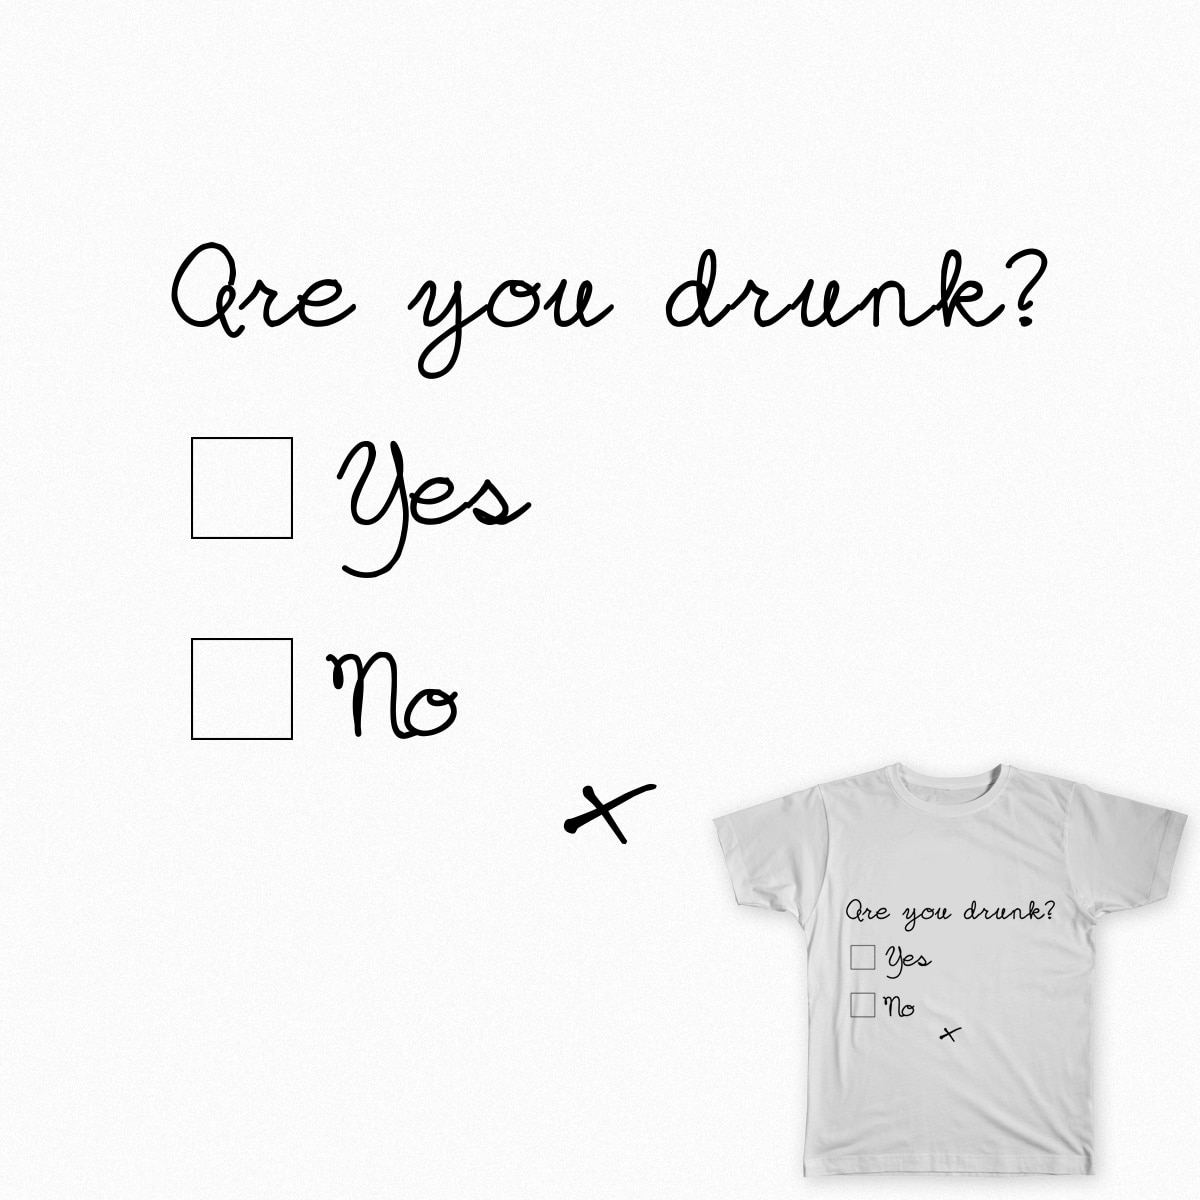 Are you drunk? by Lanune on Threadless